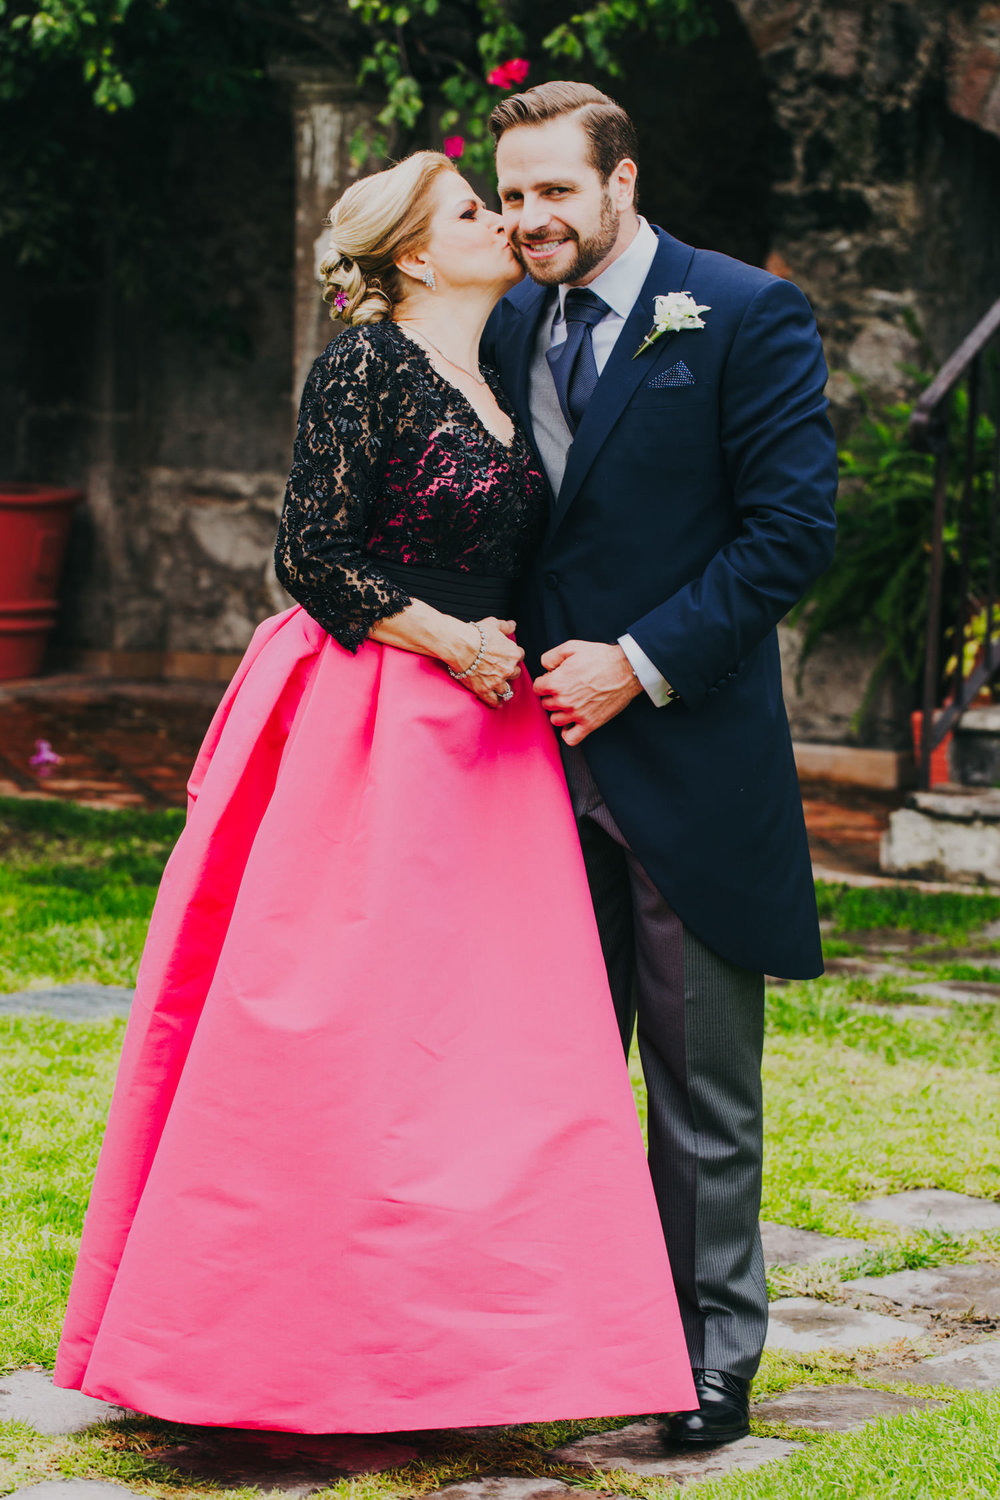 San-Miguel-de-Allende-Mexico-Wedding-Photographer-Rancho-Las-Sabinas-0009.JPG